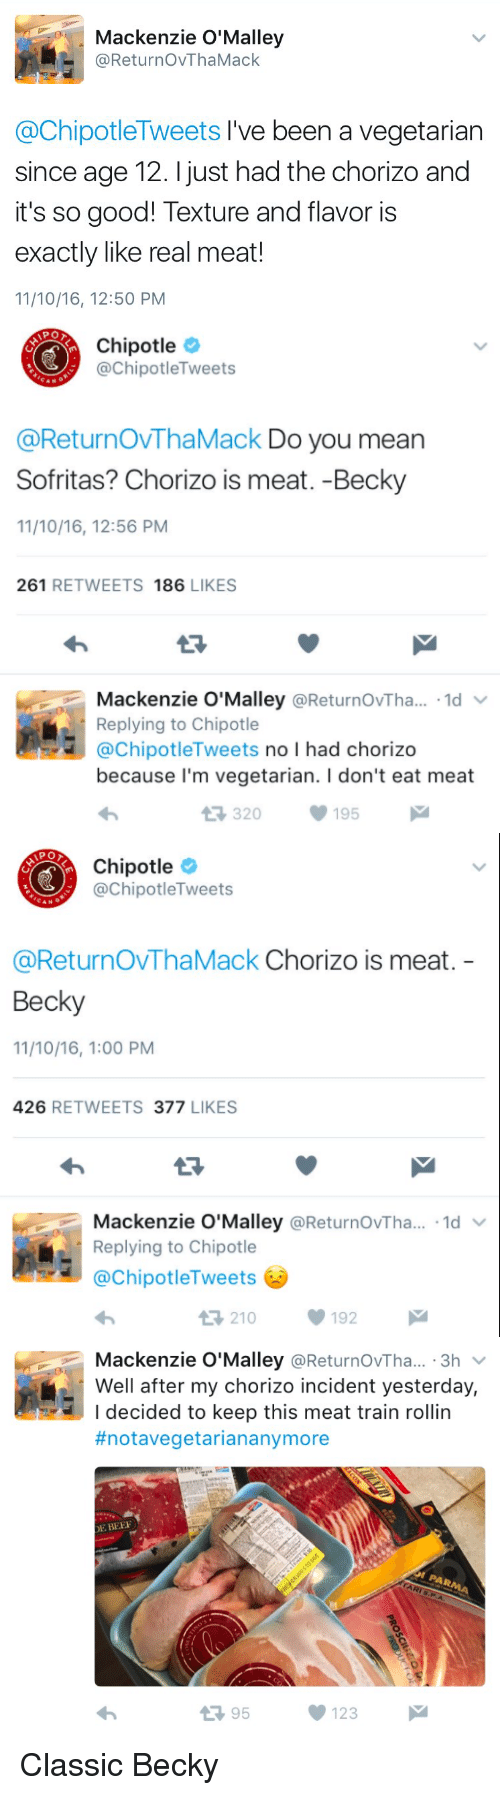 Beer, Chipotle, and Facepalm: Mackenzie O'Malley  ReturnovThaMack  @ChipotleTweets I've been a vegetarian  since age 12. just had the chorizo and  it's so good! Texture and flavor is  exactly like real meat!  11/10/16, 12:50 PM   Chipotle  @Chipotle Tweets  @ReturnovThaMack Do you mean  Sofritas? Chorizo is meat. -Becky  11/10/16, 12:56 PM  261  RETWEETS  186  LIKES  Mackenzie O'Malley  Returnov Tha...  1d  V  Replying to Chipotle  @Chipotle Tweets  no l had chorizo  because I'm vegetarian. l don't eat meat  t R, 320  195  M   Chipotle  @Chipotle Tweets  @Return OVThaMack Chorizo is meat  Becky  11/10/16, 1:00 PM  426  RETWEETS 377  LIKES  Mackenzie O'Malley  @ReturnovTha... 1d  v  Replying to Chipotle  ChipotleTweets  V 192  t 210   Mackenzie O'Malley  @ReturnovTha... 3h  Well after my chorizo incident yesterday,  I decided to keep this meat train rollin  #notavegetarian anymore  DE BEER  t 95  123 Classic Becky